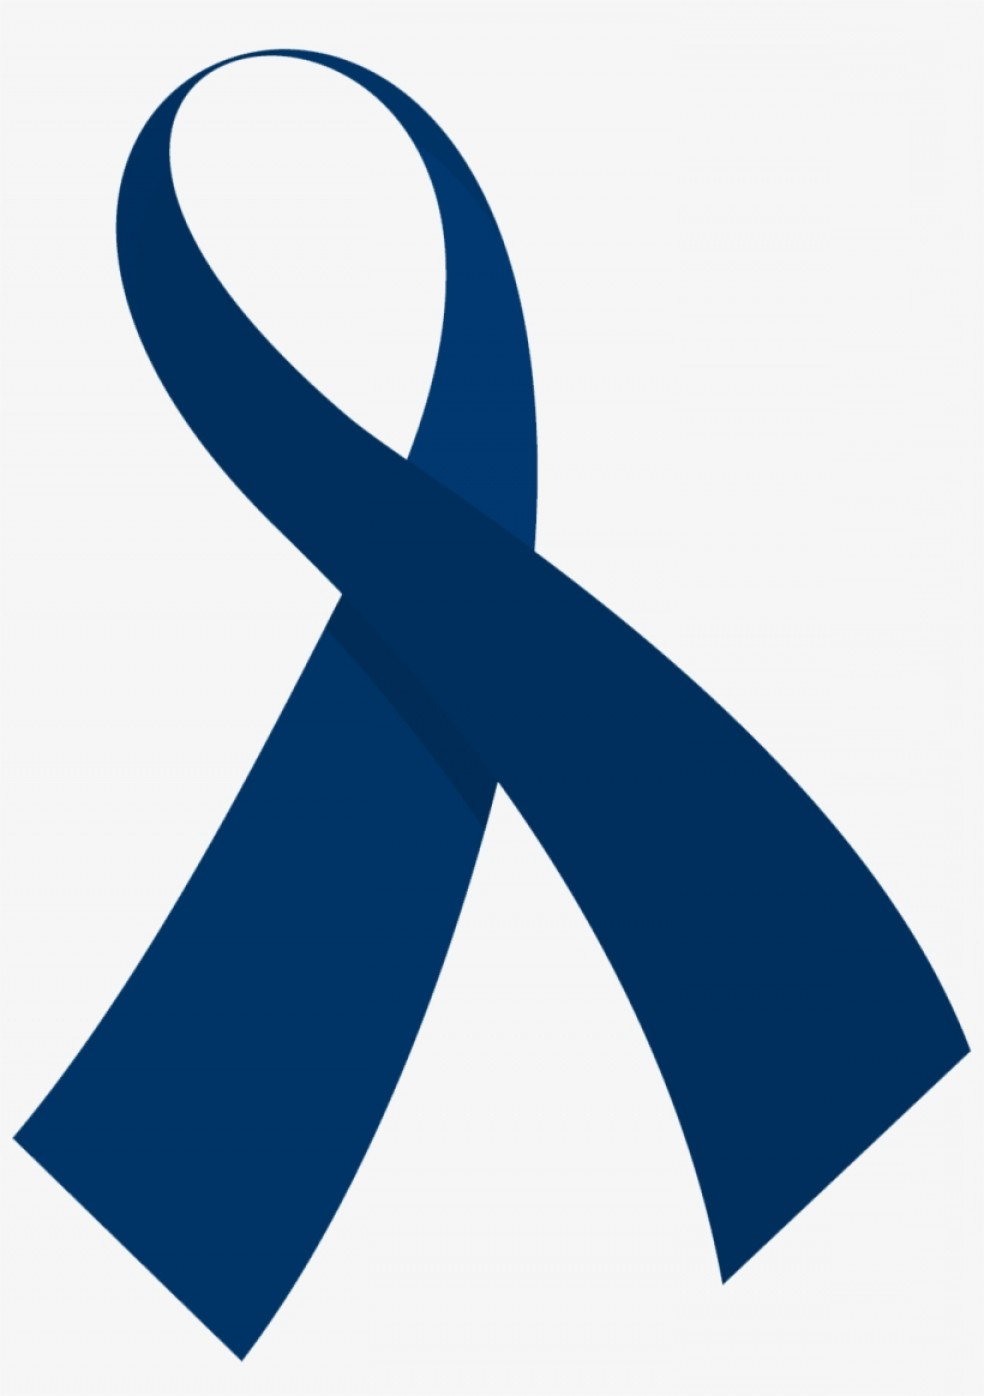 Uqatiiqocancer Ribbon Vector Colon Cancer Ribbon Png.